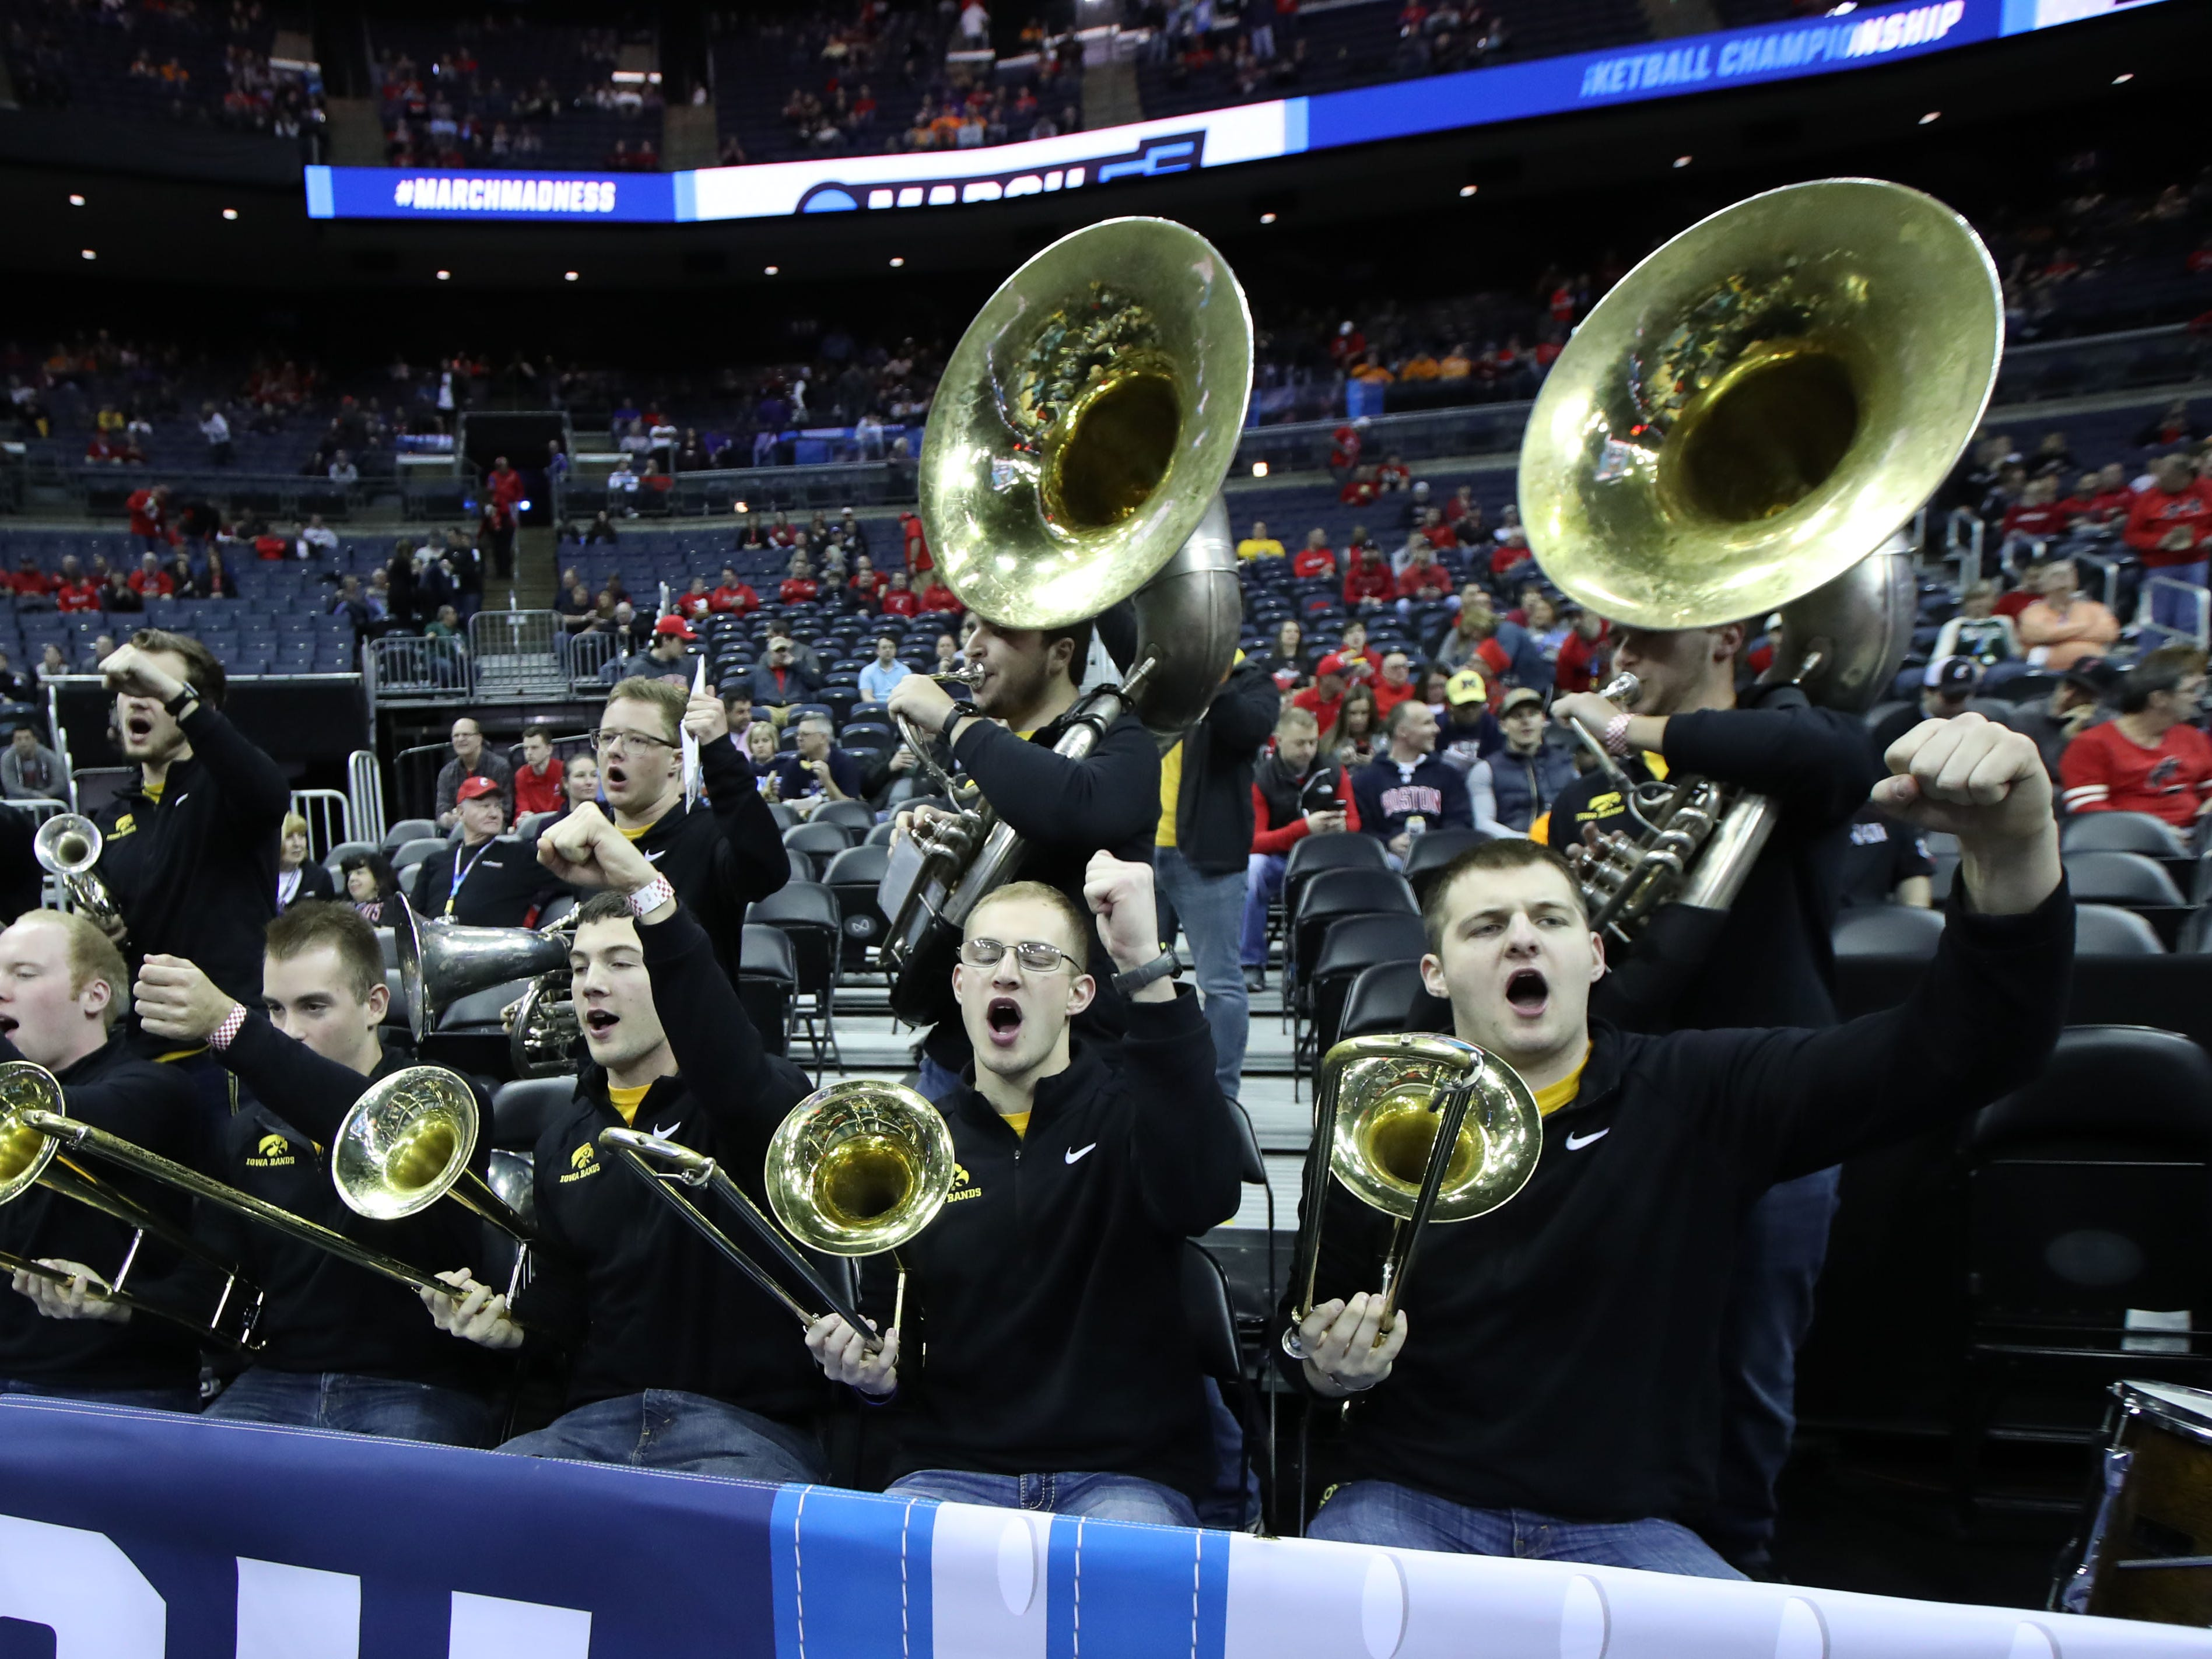 Iowa Hawkeyes band before the game against the Cincinnati Bearcats in the first round of the 2019 NCAA Tournament at Nationwide Arena on March 22, 2019.